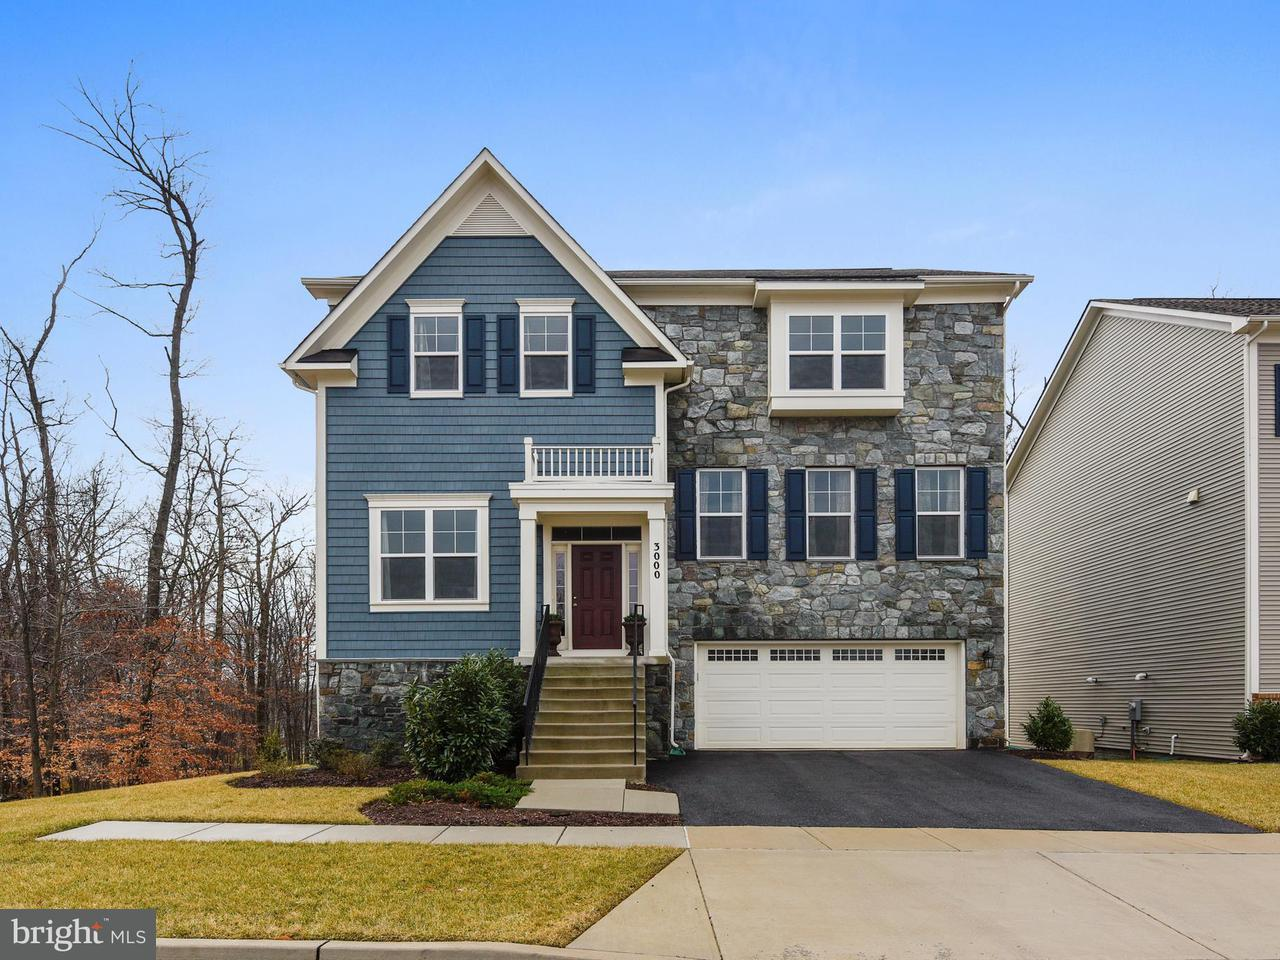 Single Family Home for Sale at 3000 Big Bear Ter 3000 Big Bear Ter Silver Spring, Maryland 20906 United States